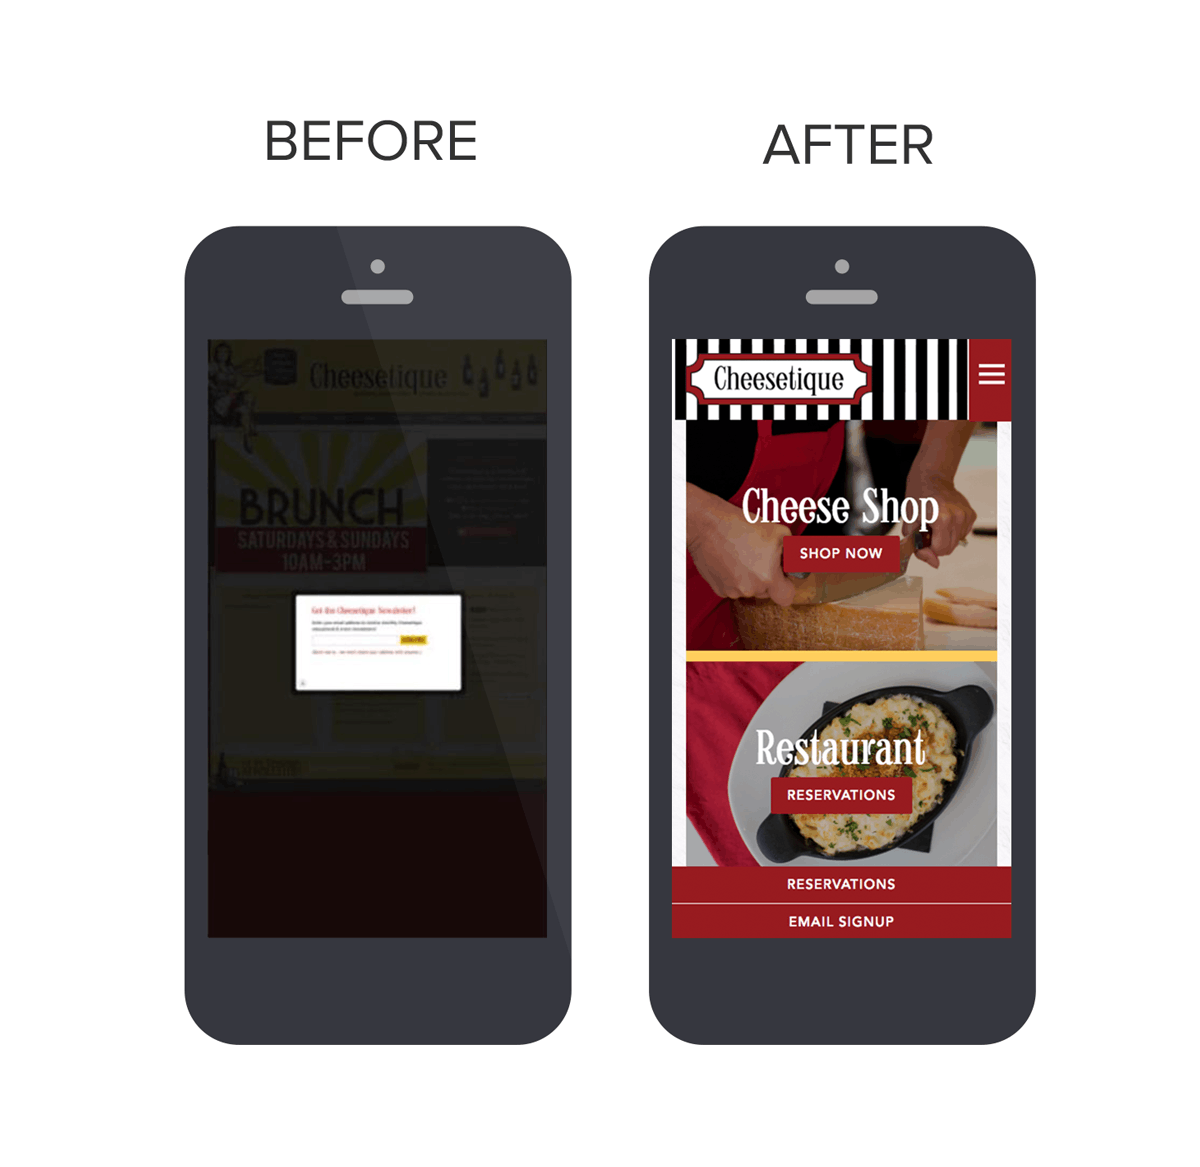 Before & After of Cheesetique's website in a mobile device